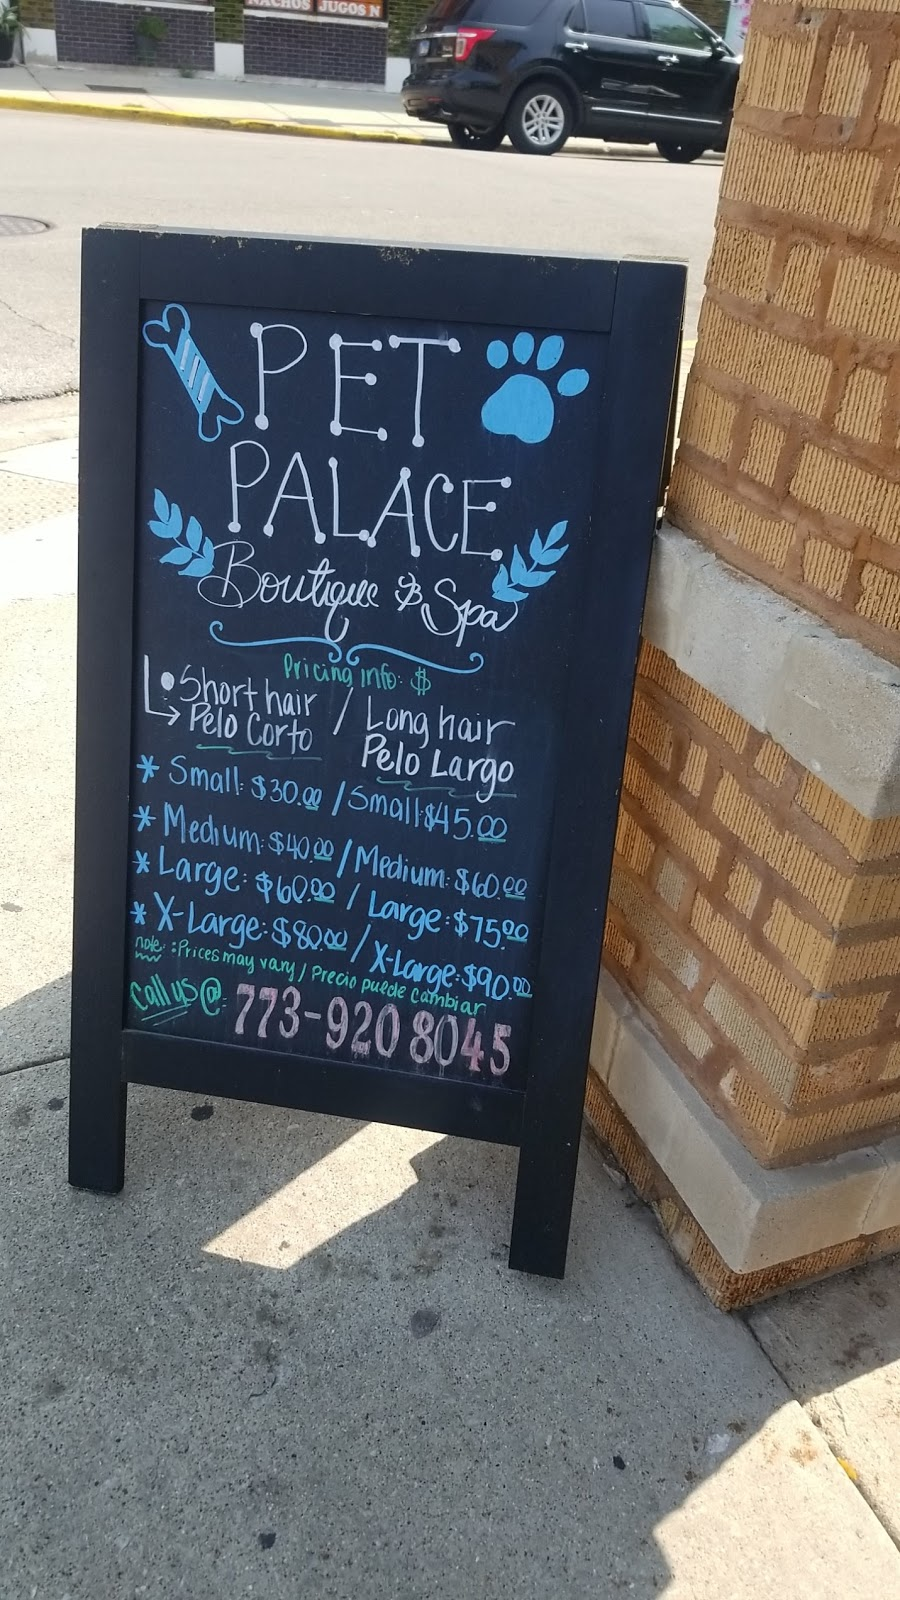 Pet Palace Boutique & Spa - point of interest  | Photo 2 of 3 | Address: 4901 W 14th St, Cicero, IL 60804, USA | Phone: (773) 920-8045